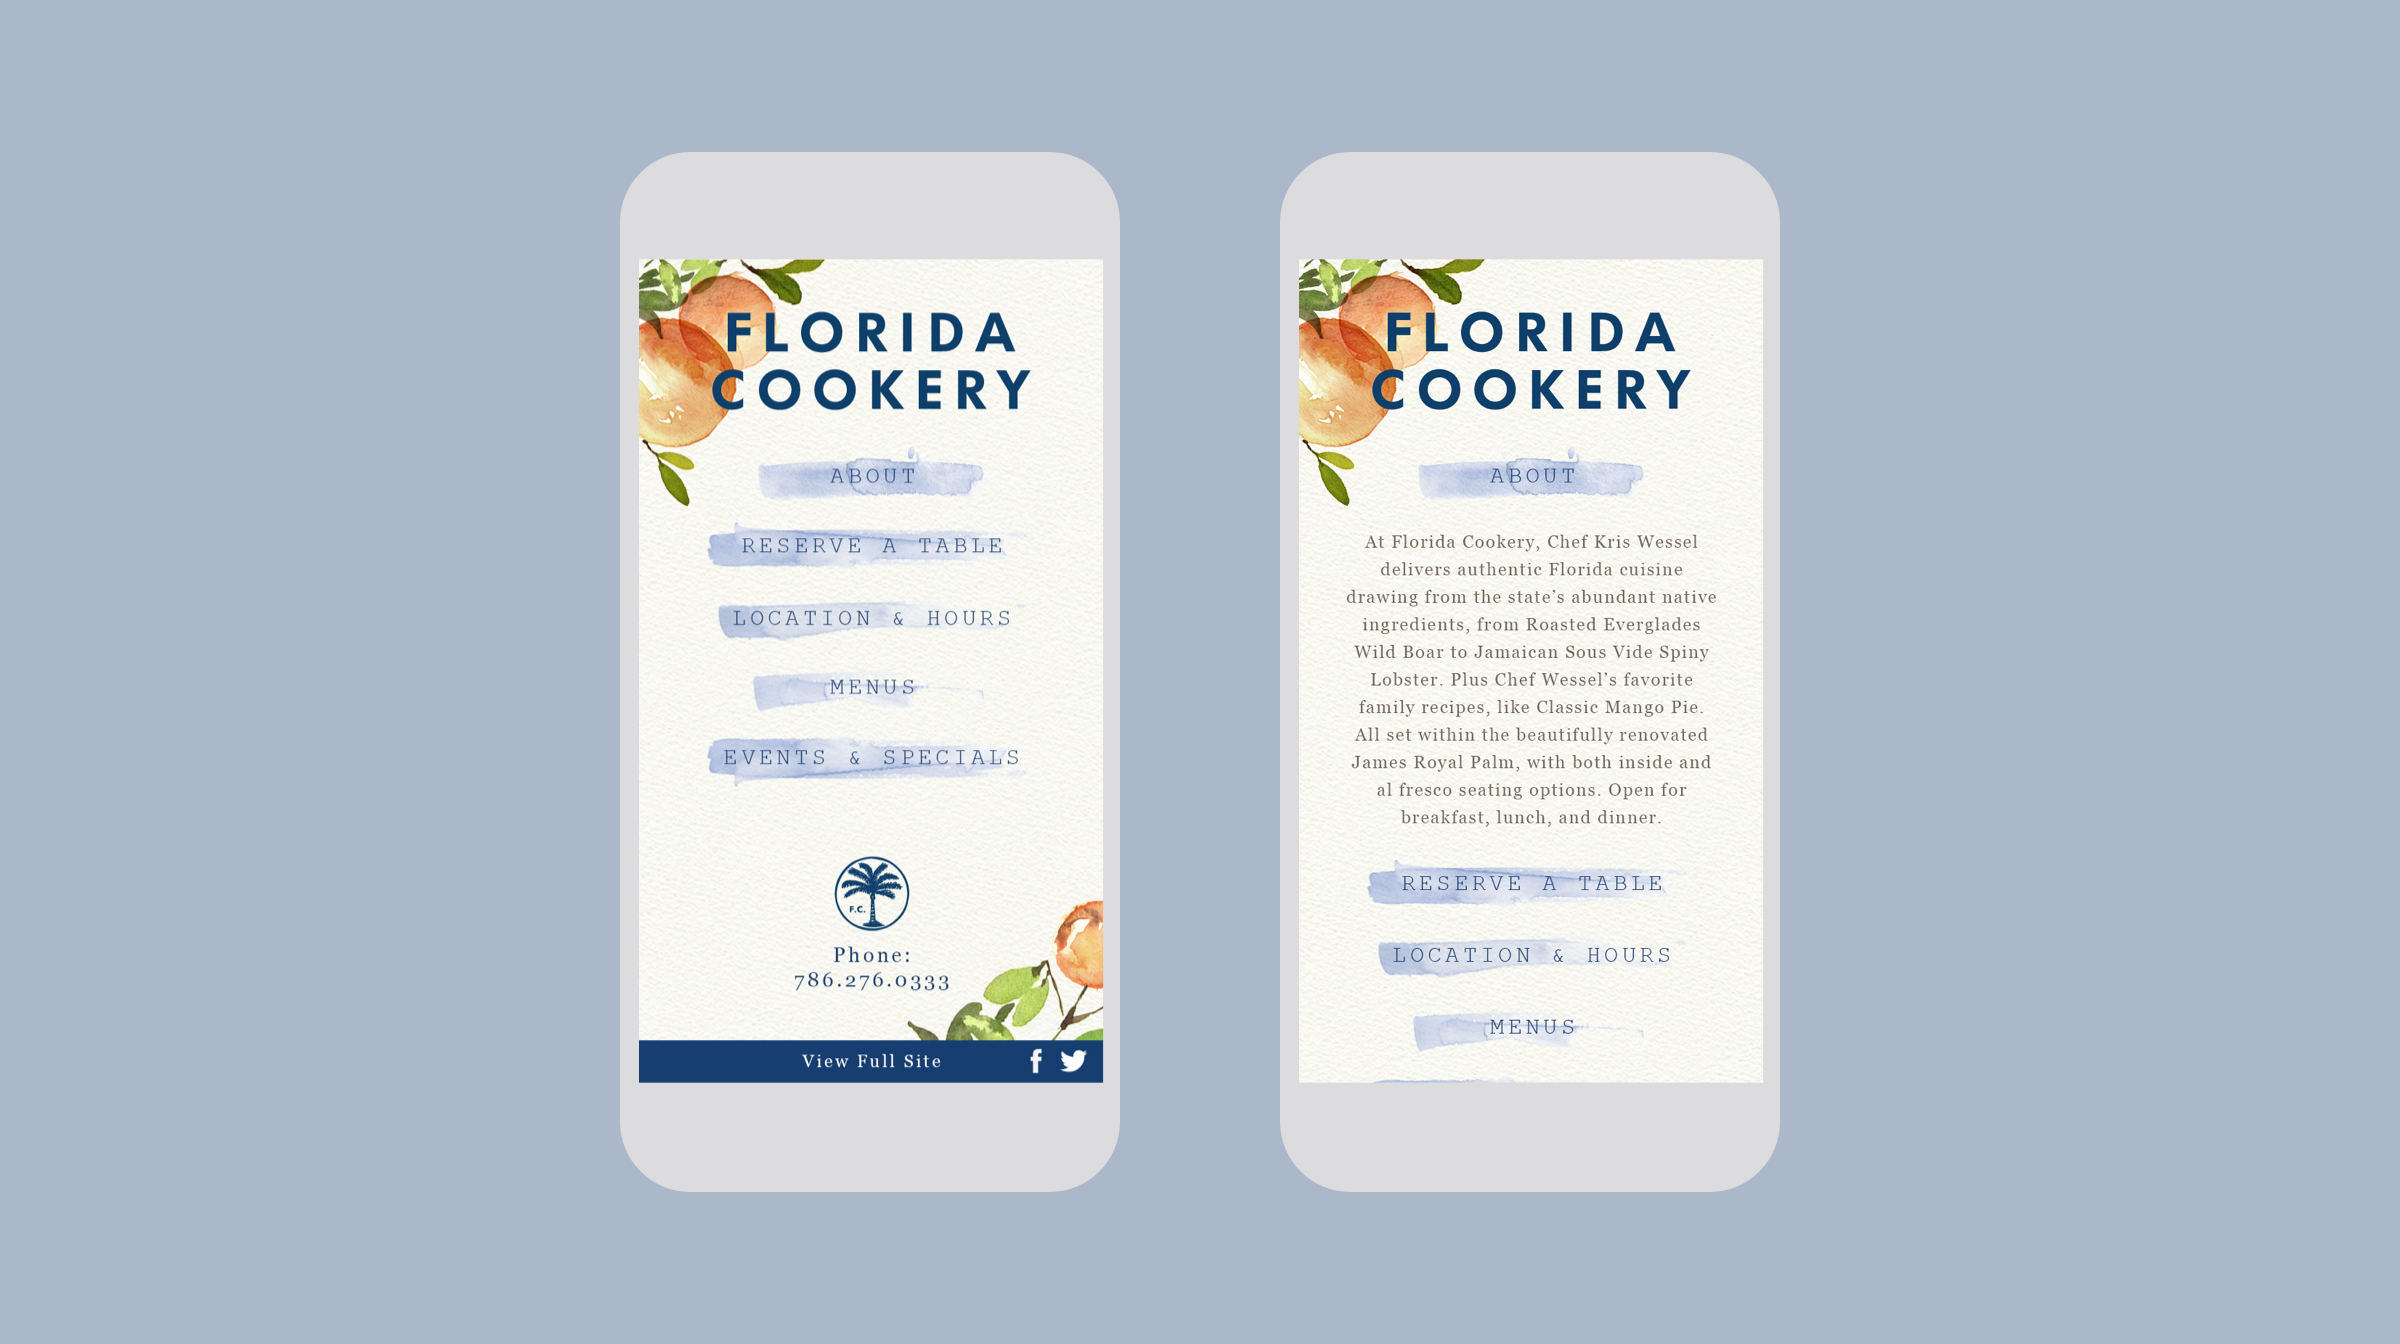 Florida-Cookery-Website-Mobile-1.jpg